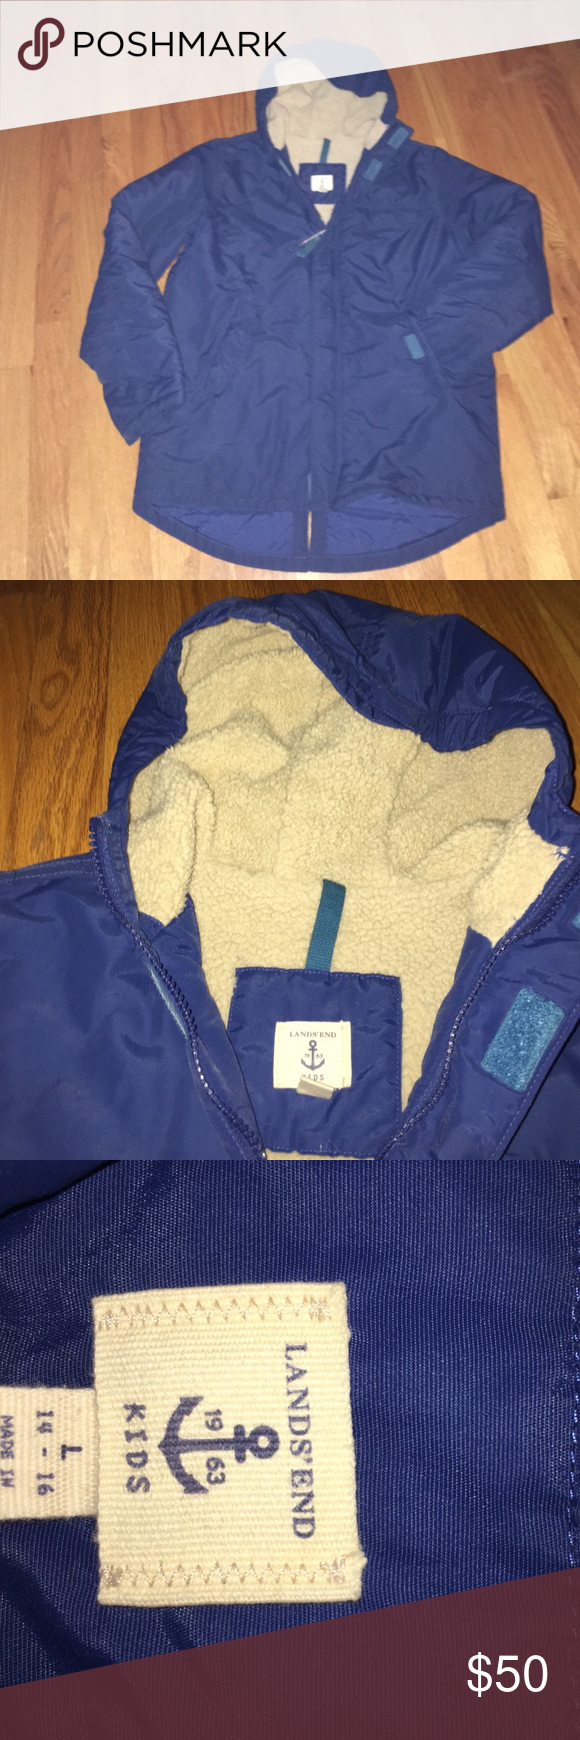 Like new lands end boys ski jacket, size large Like new boys ski jacket. Royal blue. Size large, 14-16. Fleece lined and water resistant!  Great for Skiing.  Check out the matching ski bib and Sorel boots.  Will bundle! Lands' End Jackets & Coats Puffers